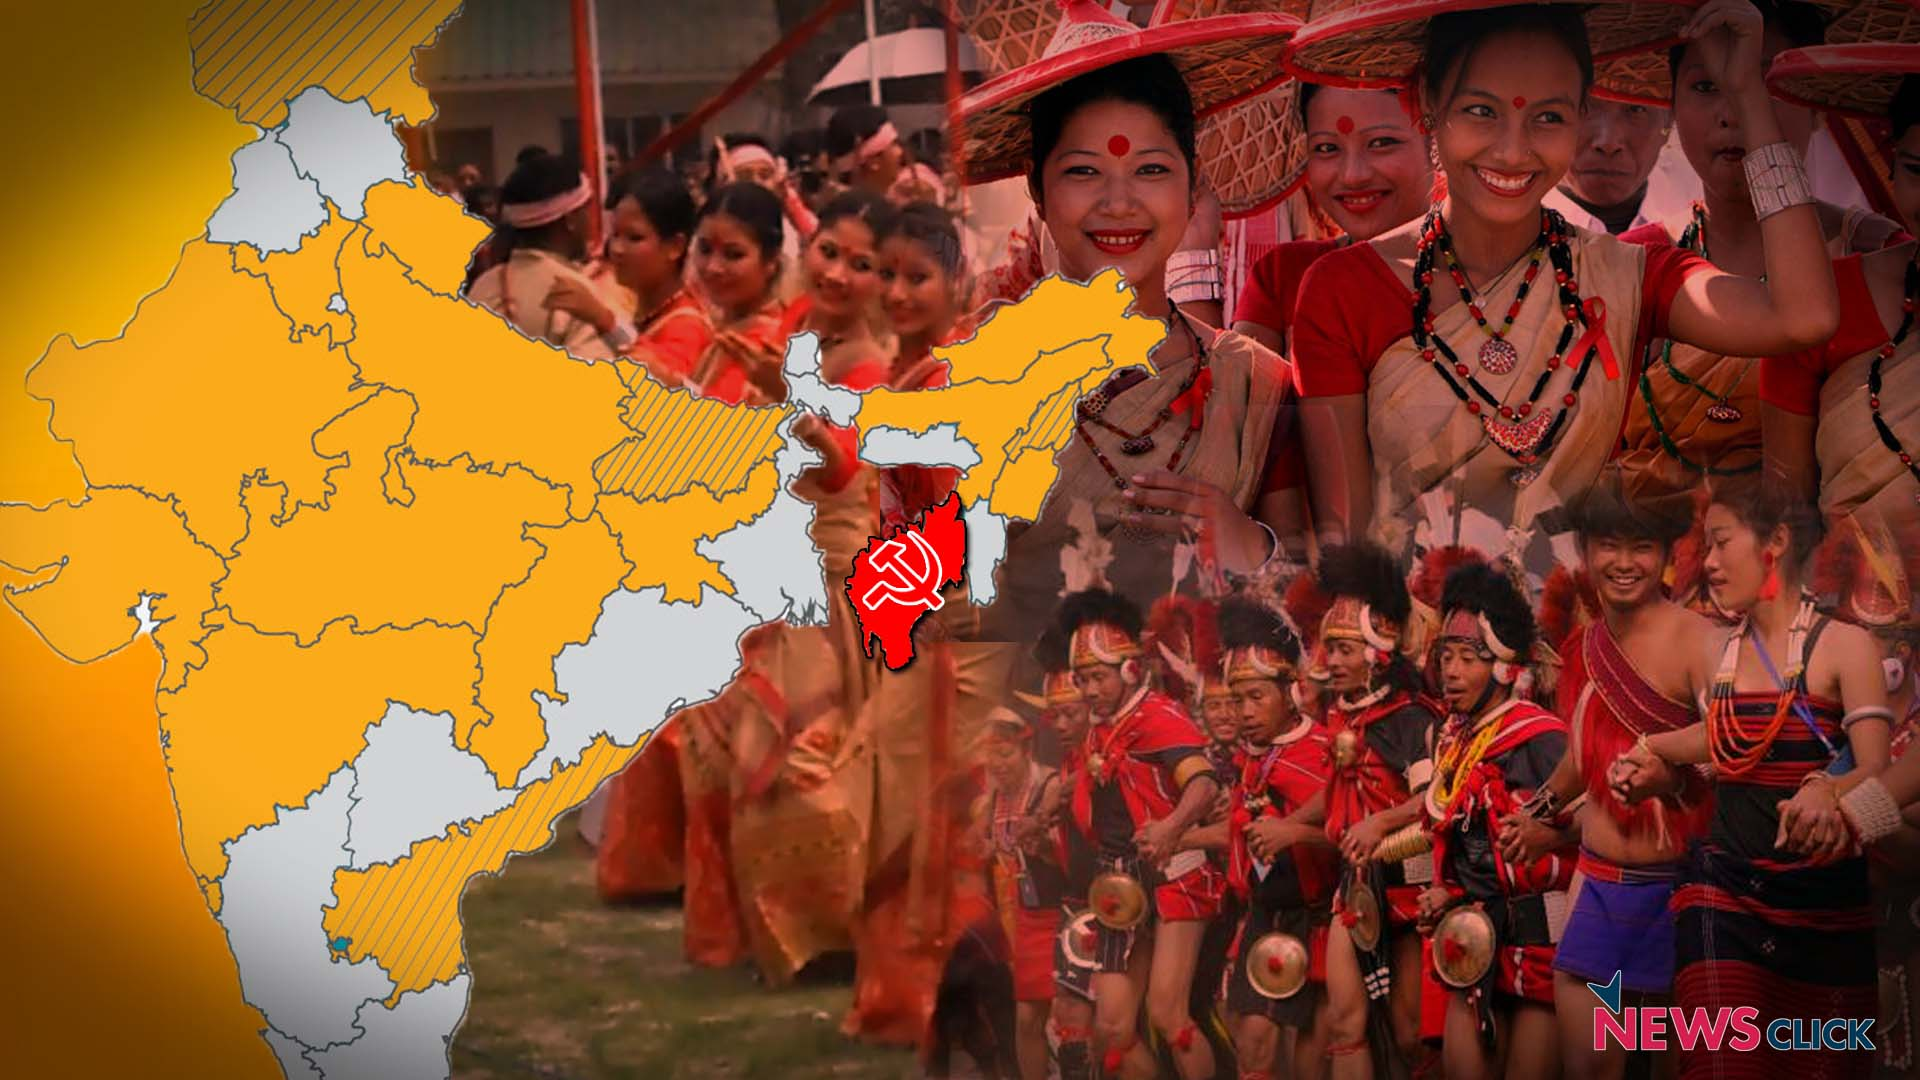 Tripura Elections 2018: Opinion Poll Predicts End Of CPI(M) Rule